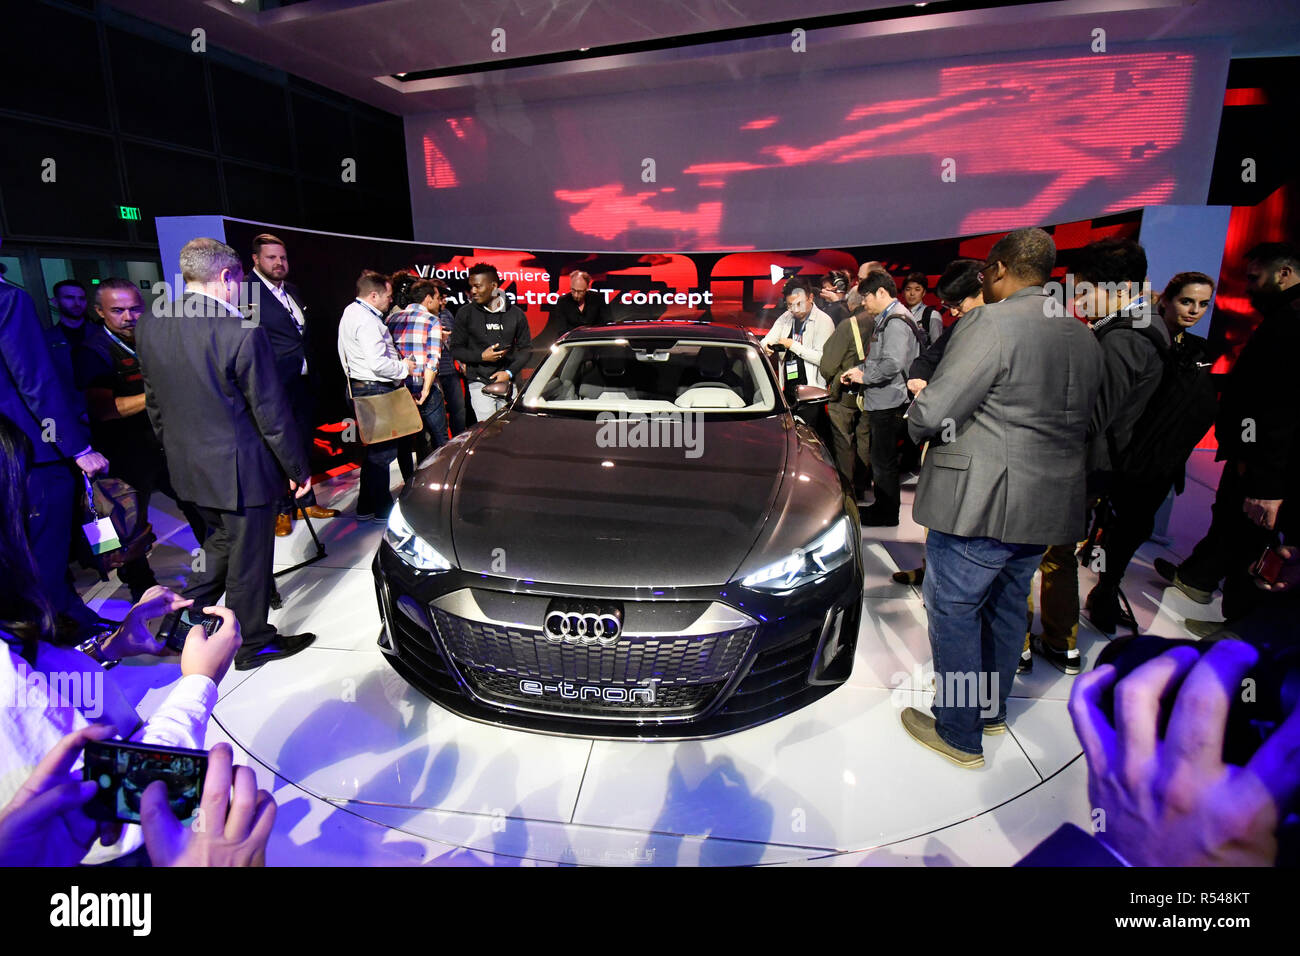 2020 Los Angeles Auto Show.The New 2020 Audi E Tron Gt Concept Car That Will Be Coming